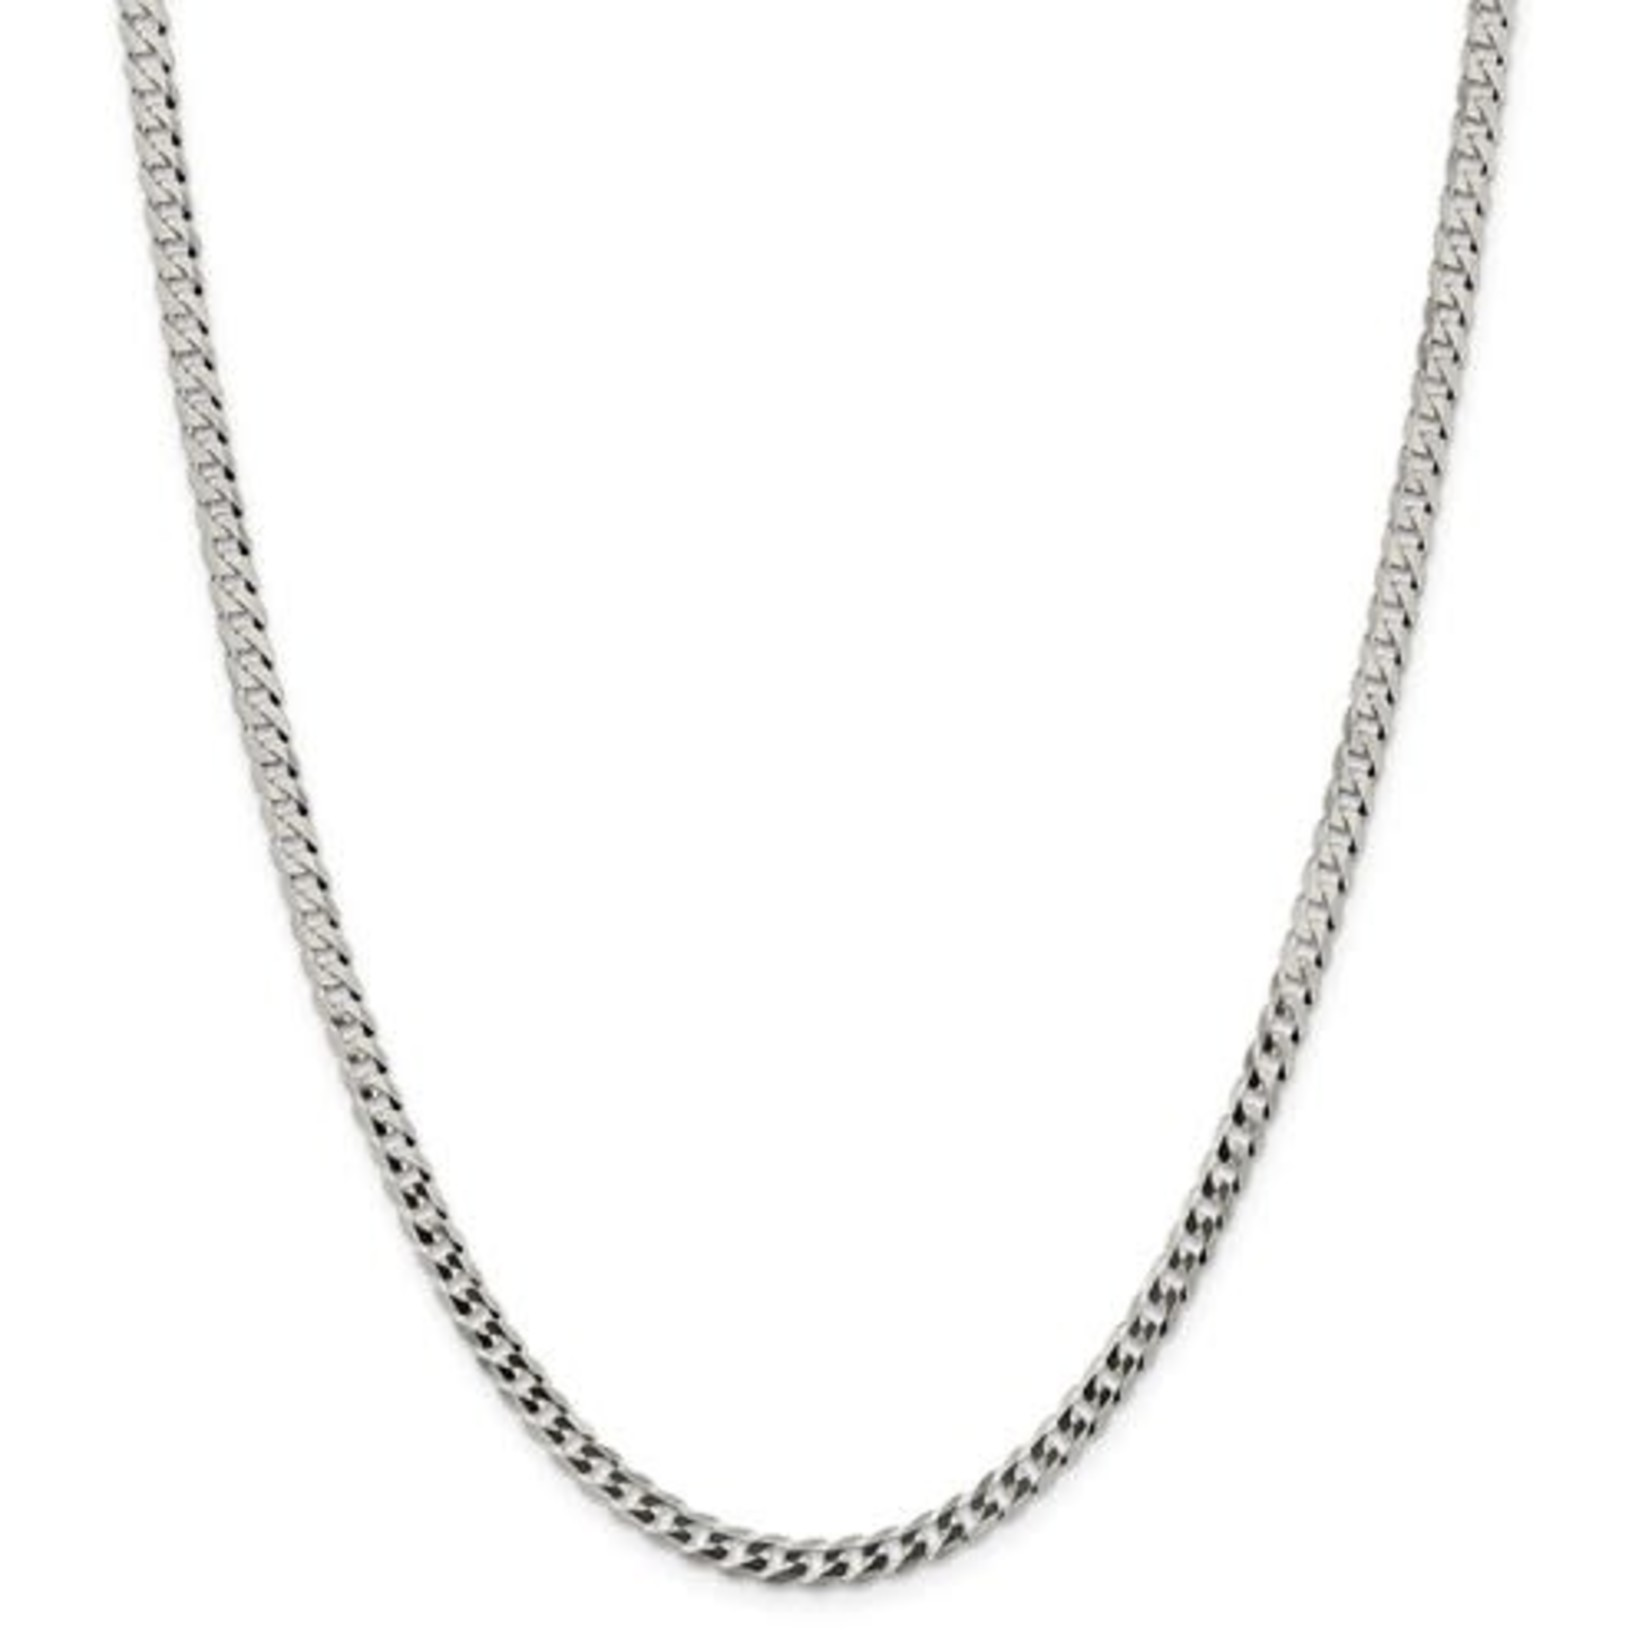 """This Is Life Sterling Silver 4.5mm Close Link Flat Curb 22"""" Chain"""